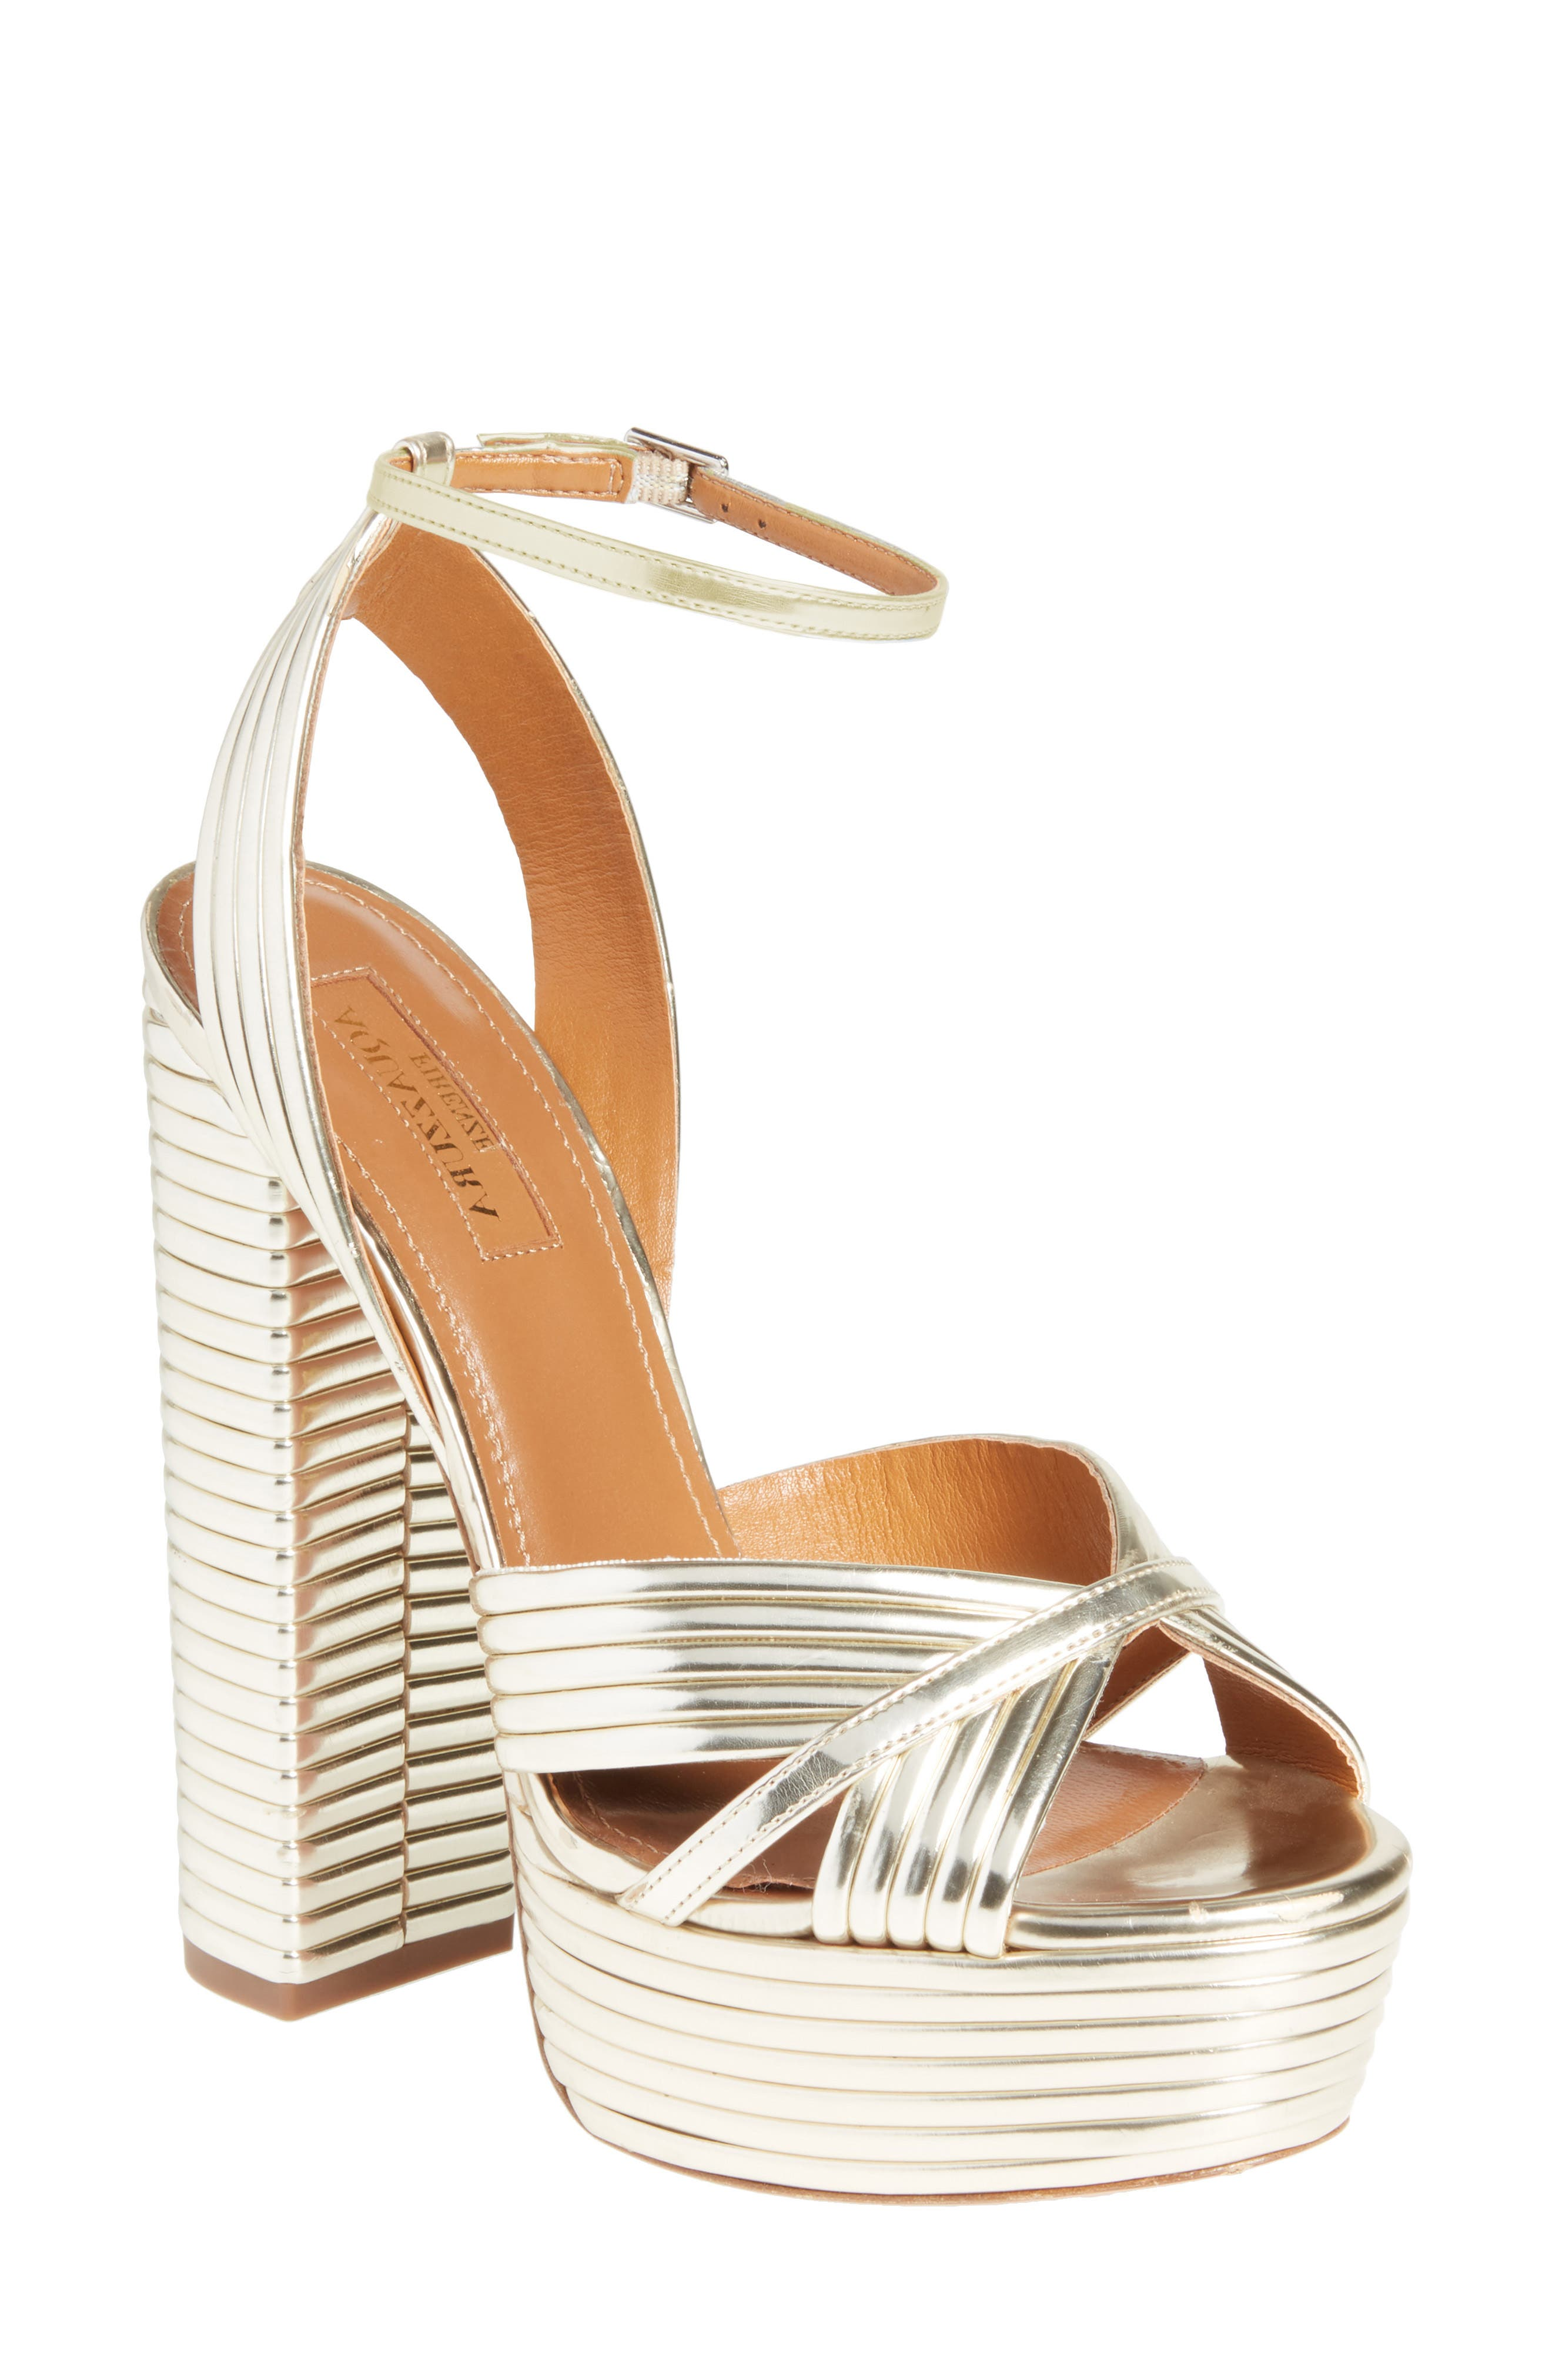 Sundance Platform Sandal,                         Main,                         color, Light Gold